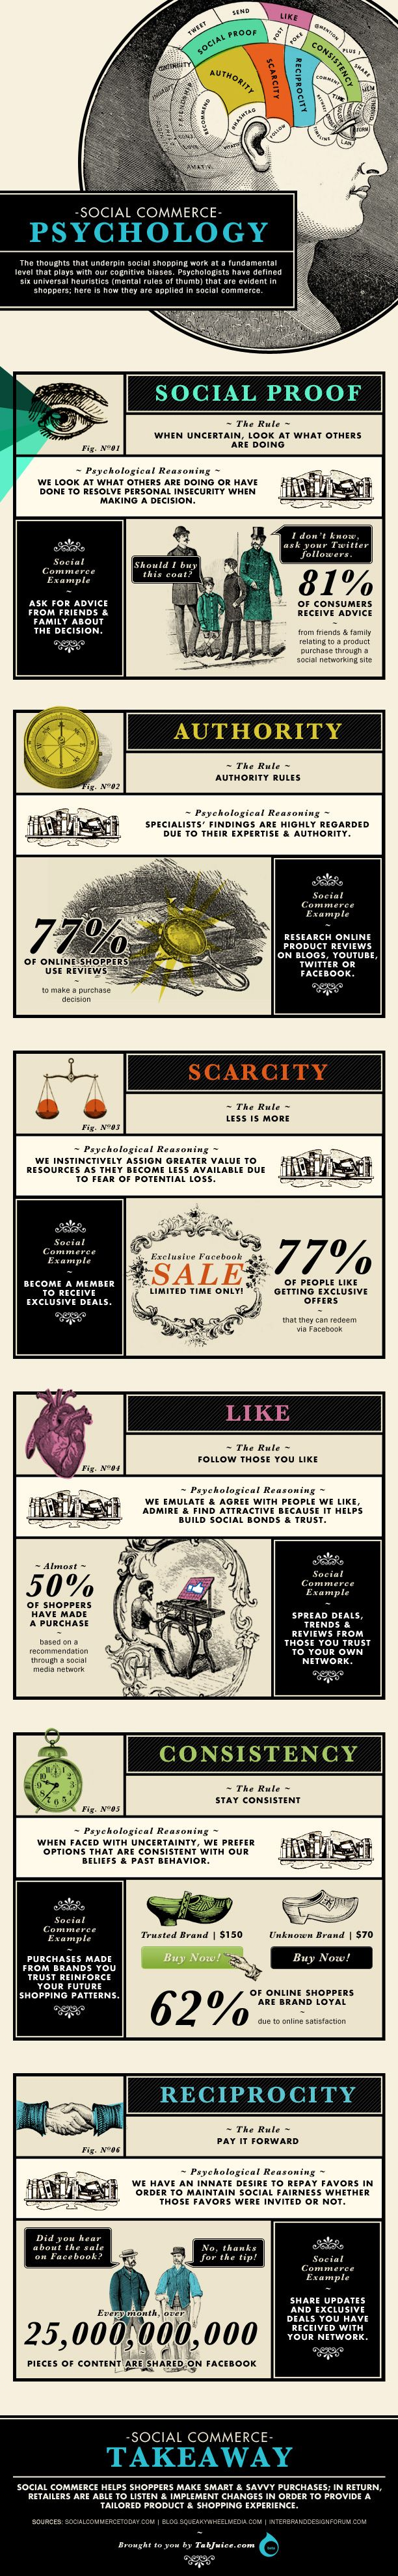 The Psychology of Social Commerce [Infographic] | Get Elastic Ecommerce Blog -- awesome visuals and stats here. What influences us to make a purchase online?